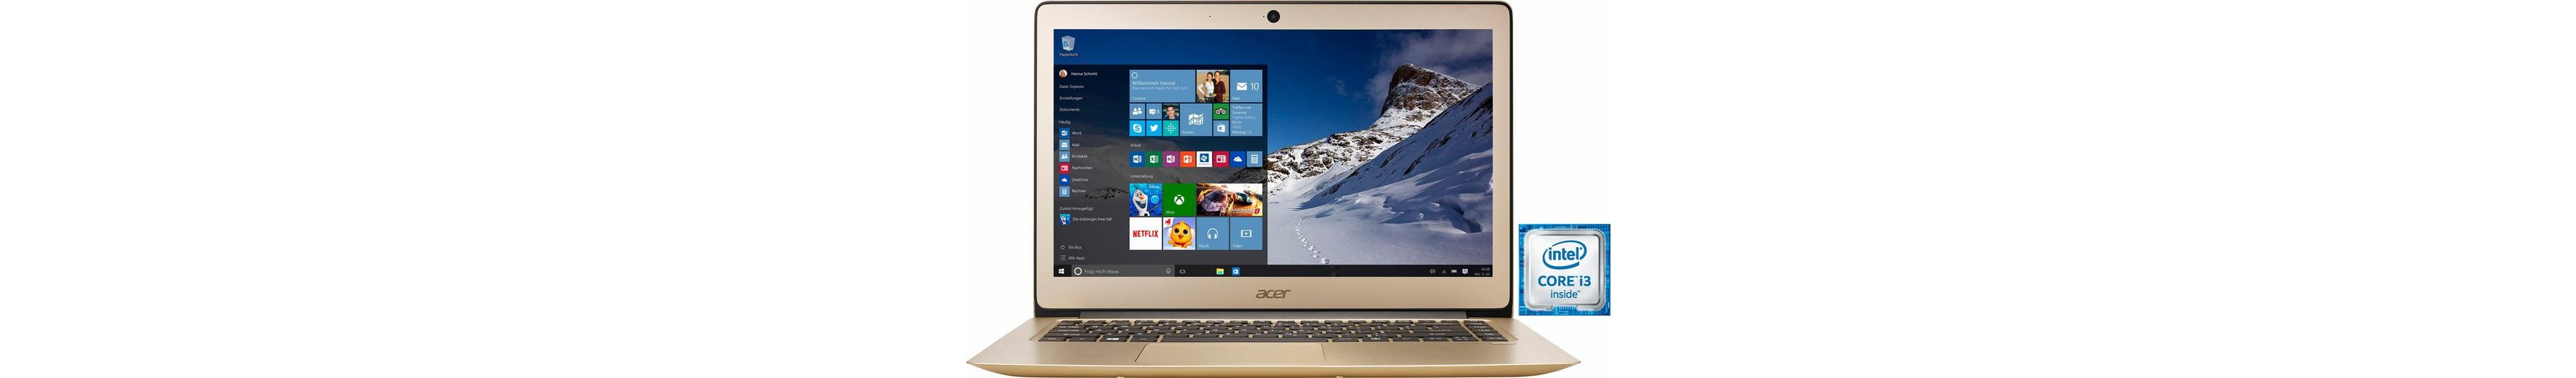 Acer Swift SF314-51-3632 Notebook, Intel® Core™ i3, 35,6 cm (14 Zoll), 128 GB Speicher